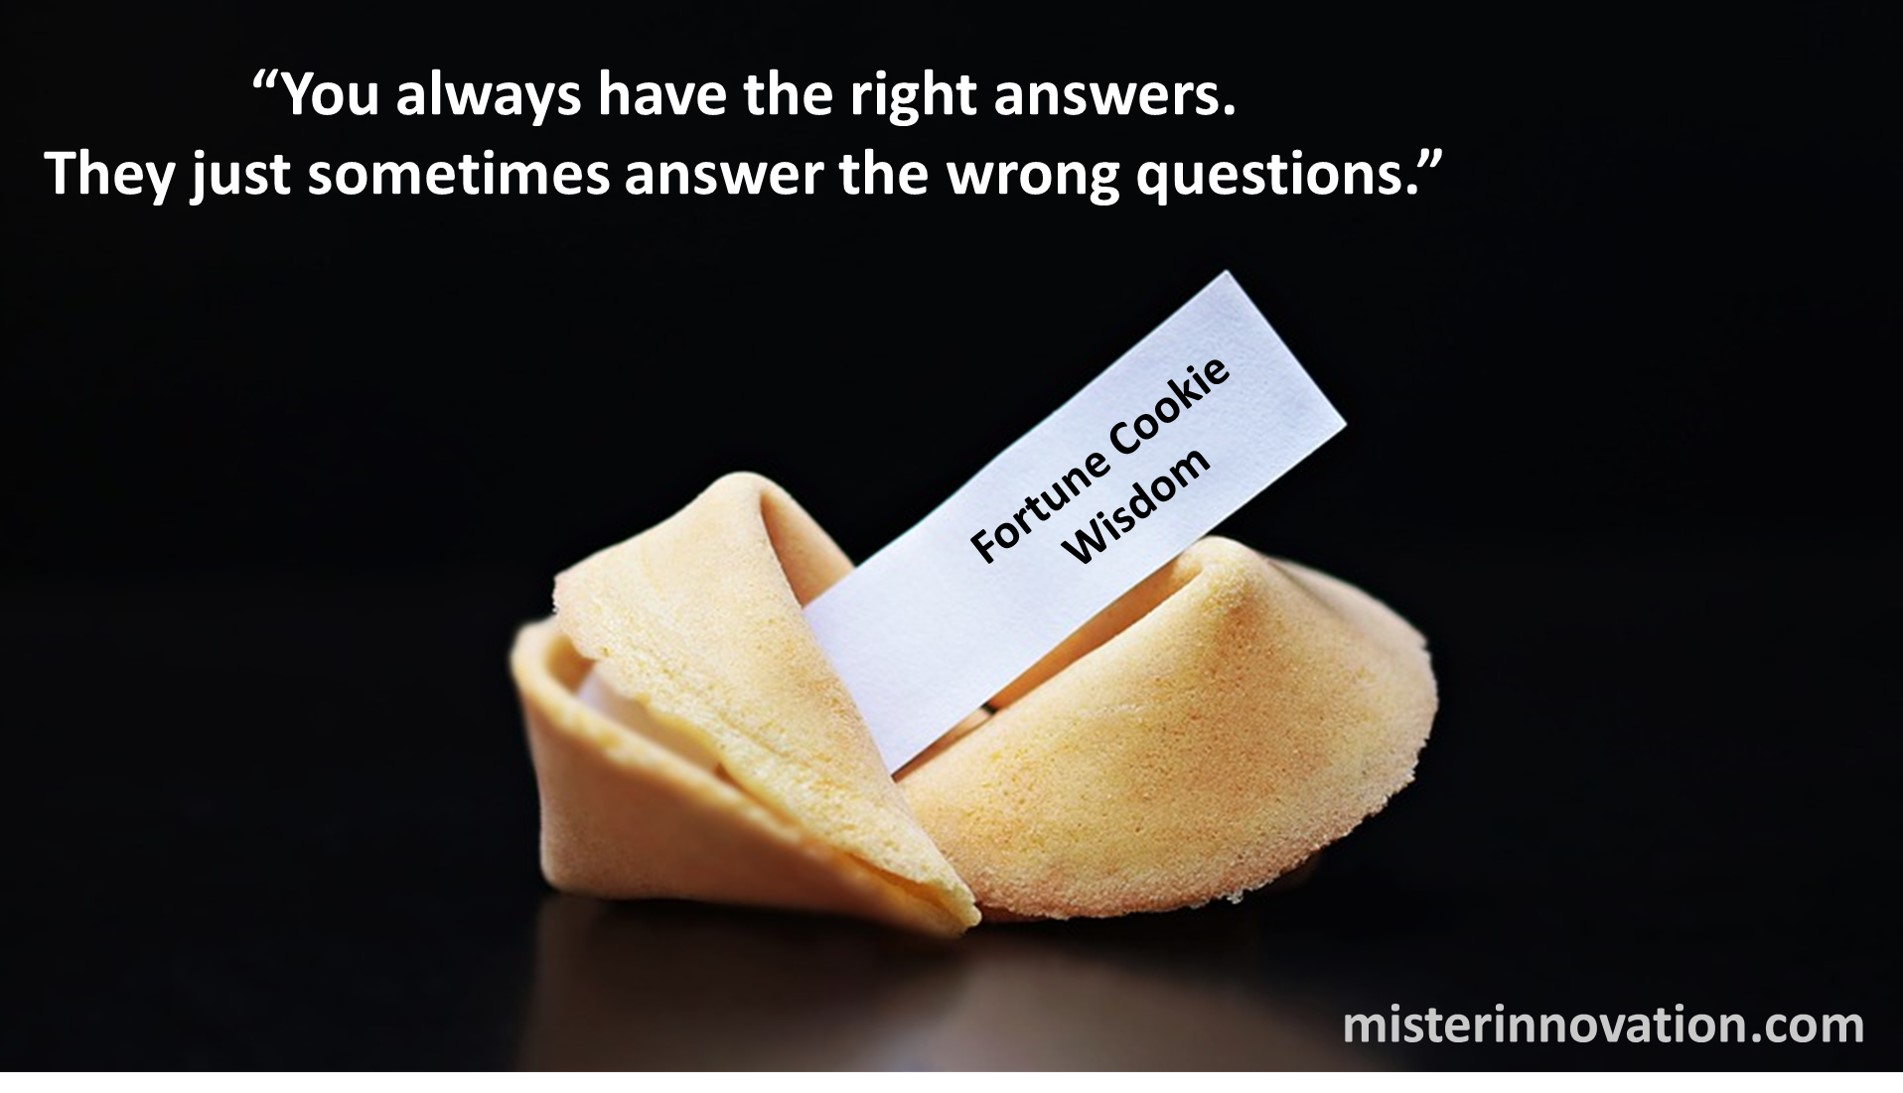 Fortune Cookie Wisdom on Questions and Answers